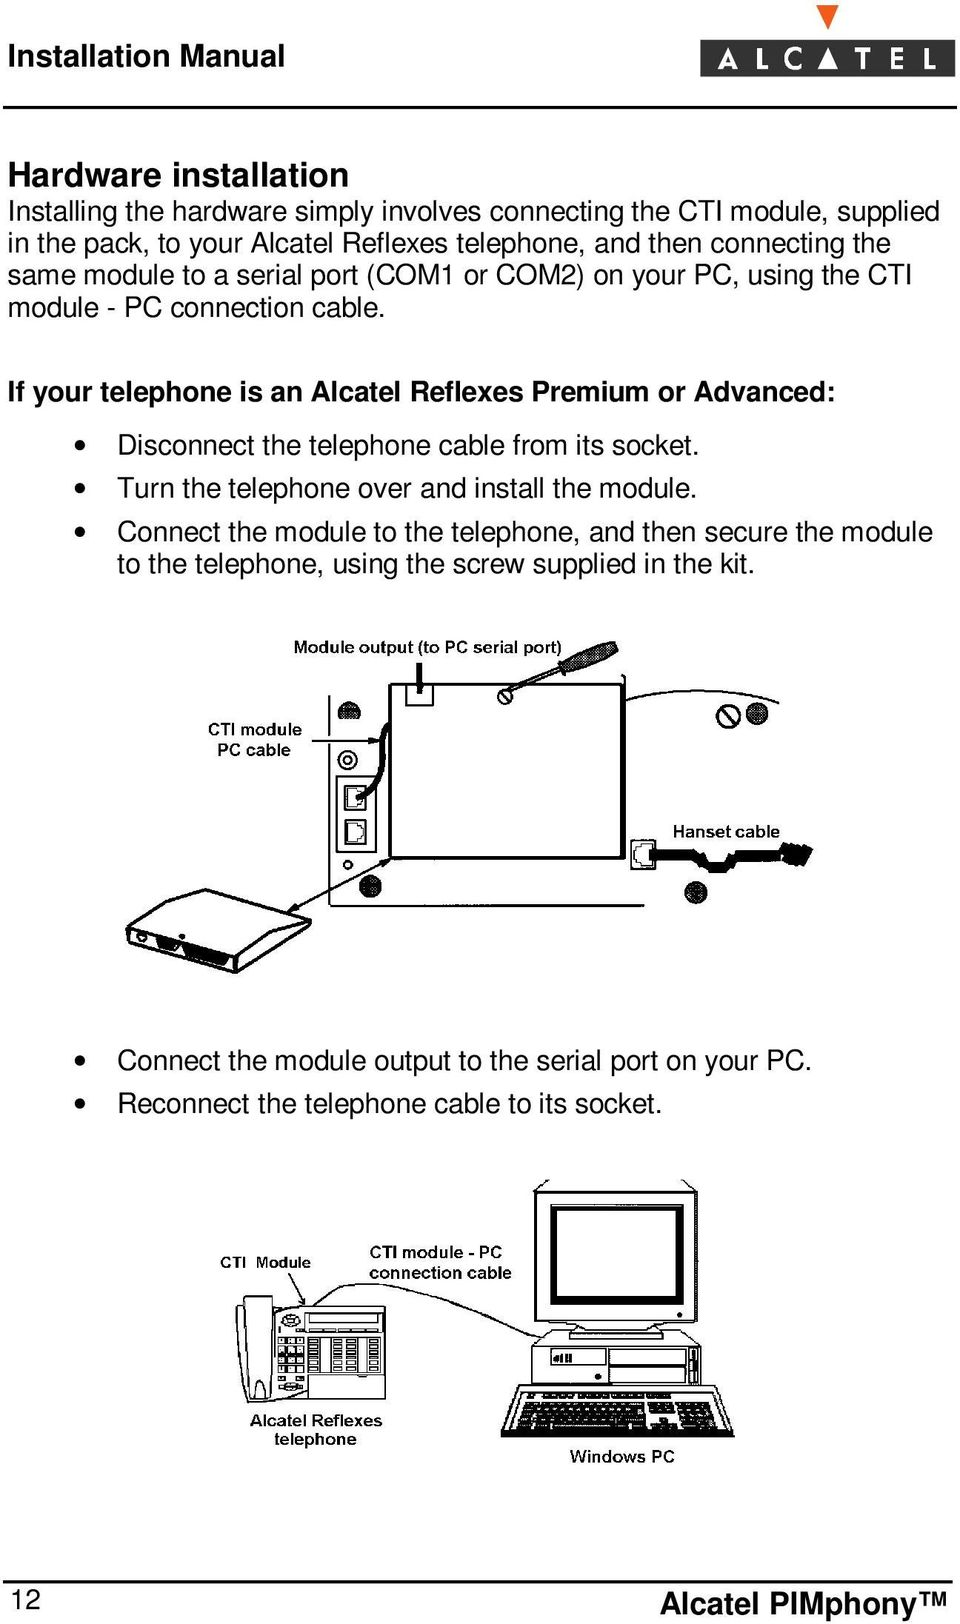 If your telephone is an Alcatel Reflexes Premium or Advanced: Disconnect the telephone cable from its socket. Turn the telephone over and install the module.